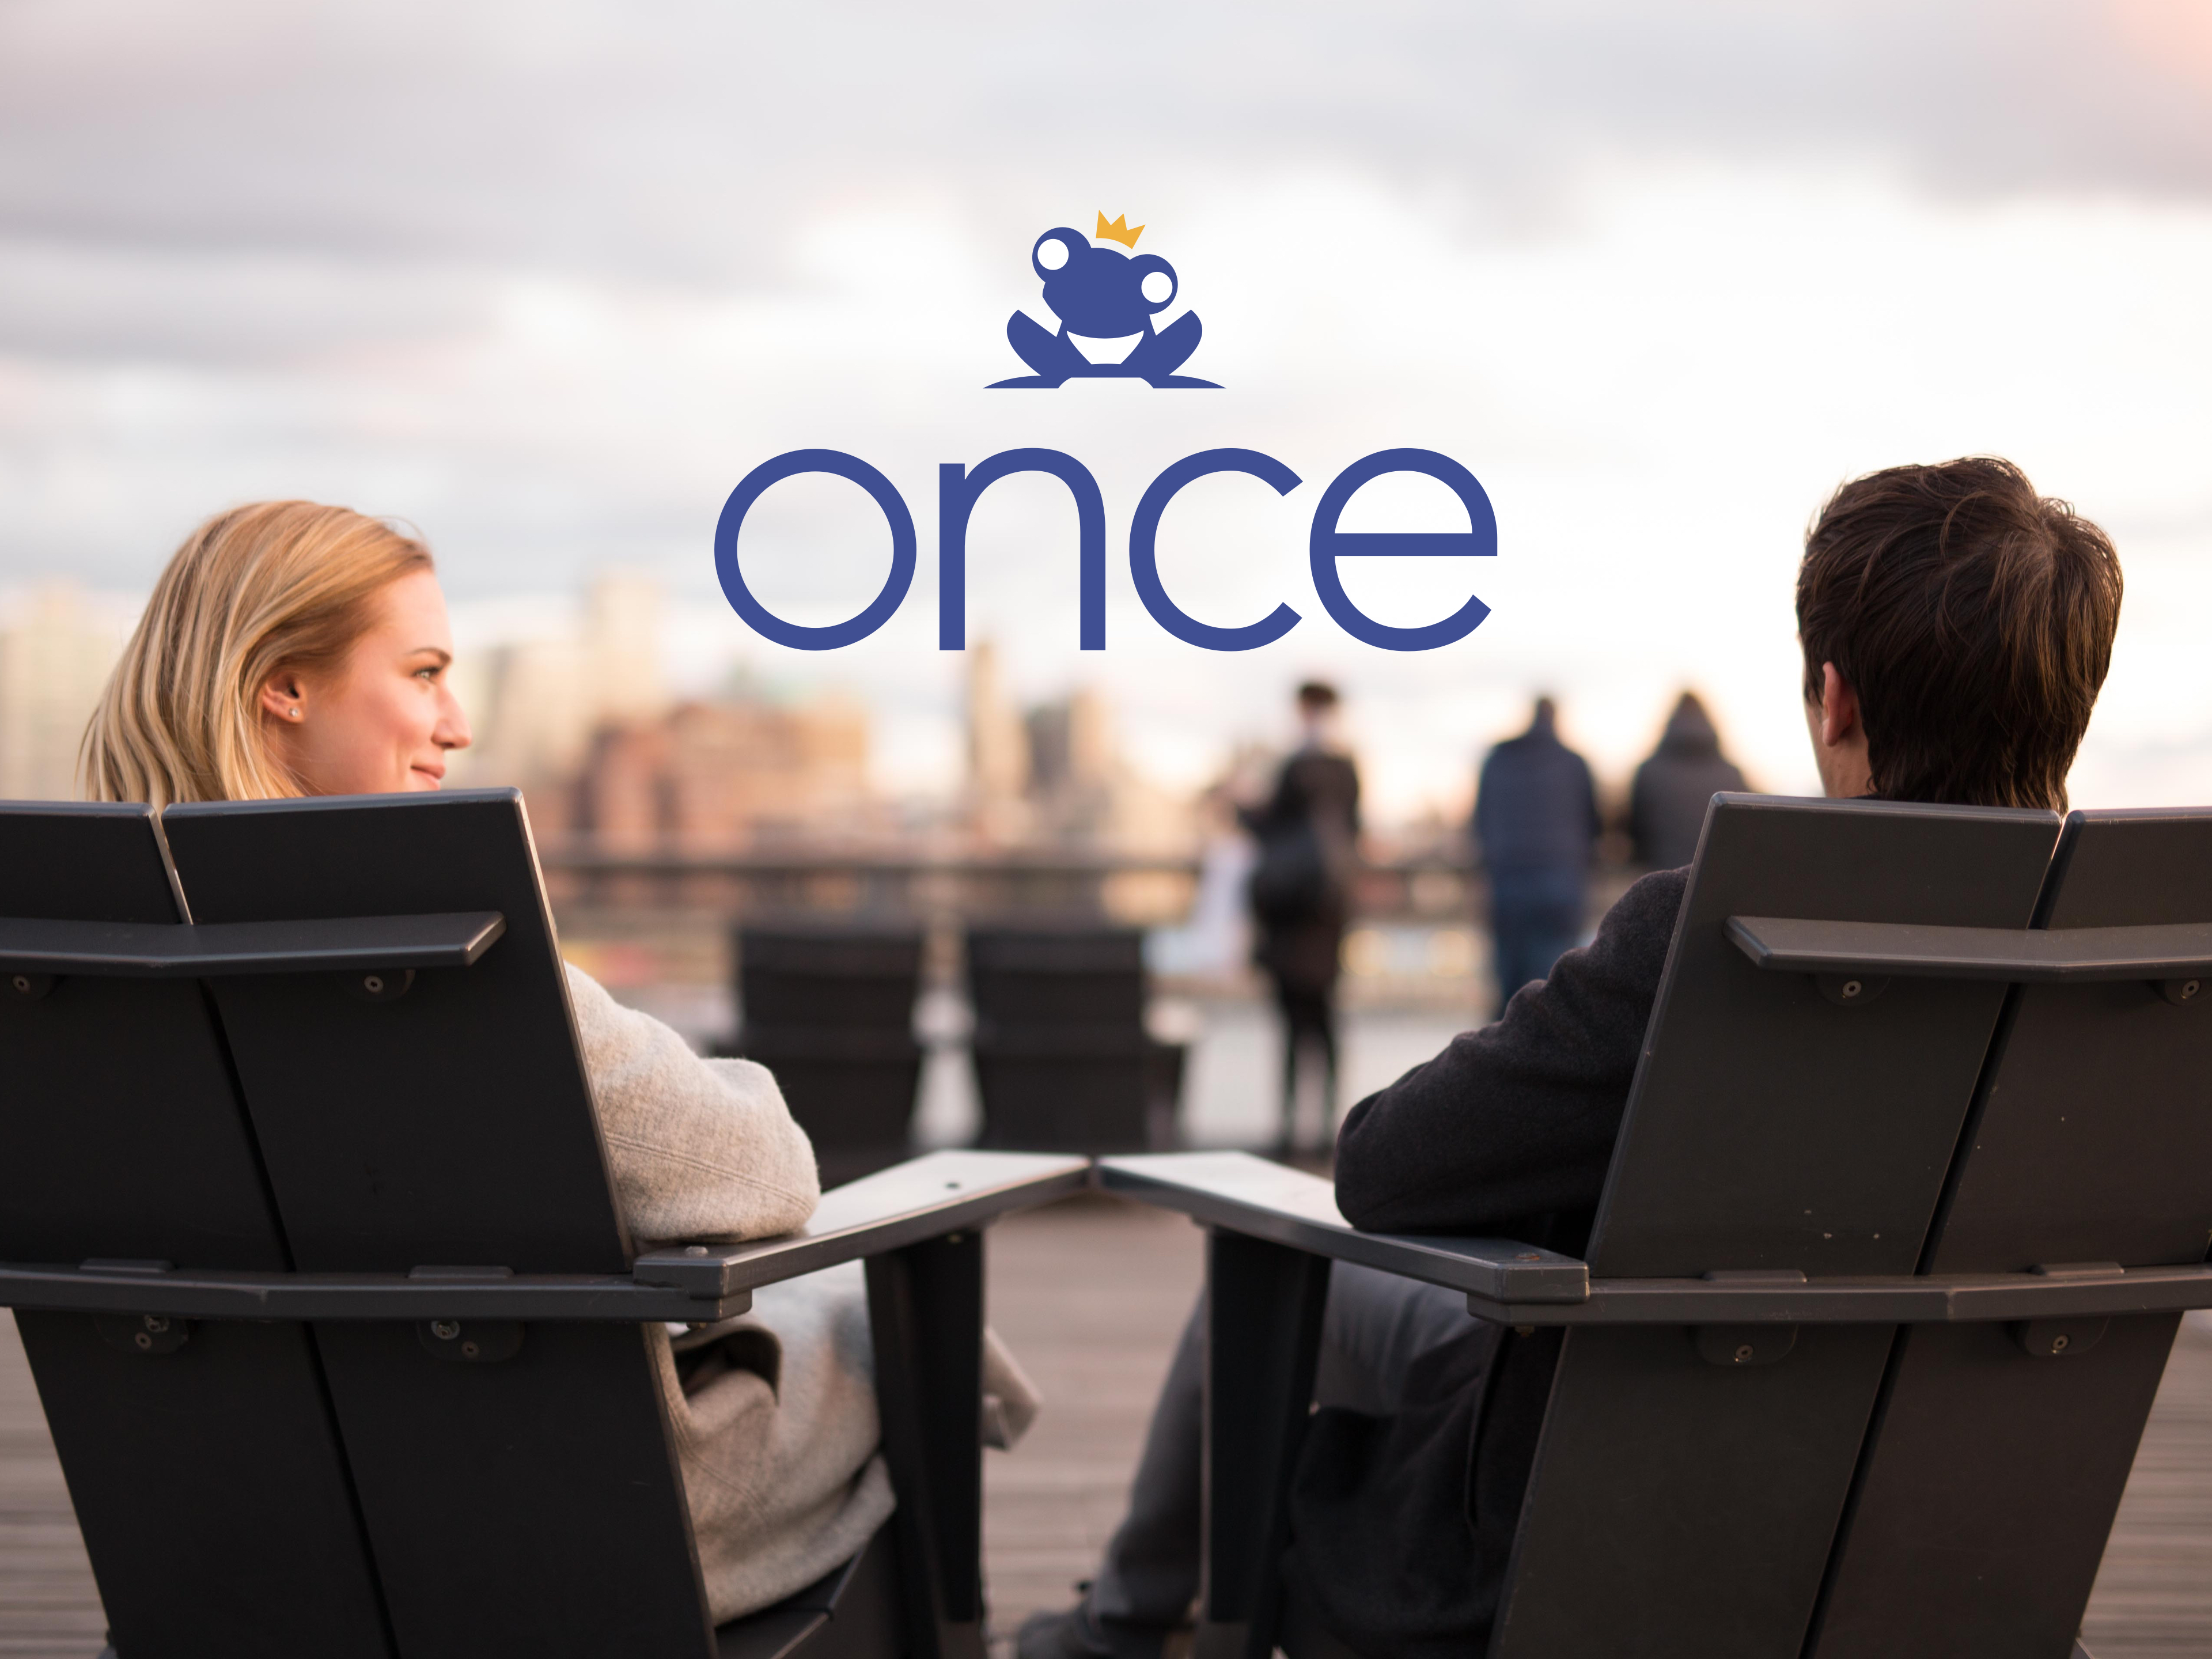 Dating Group Acquires Once in $18 Million Deal